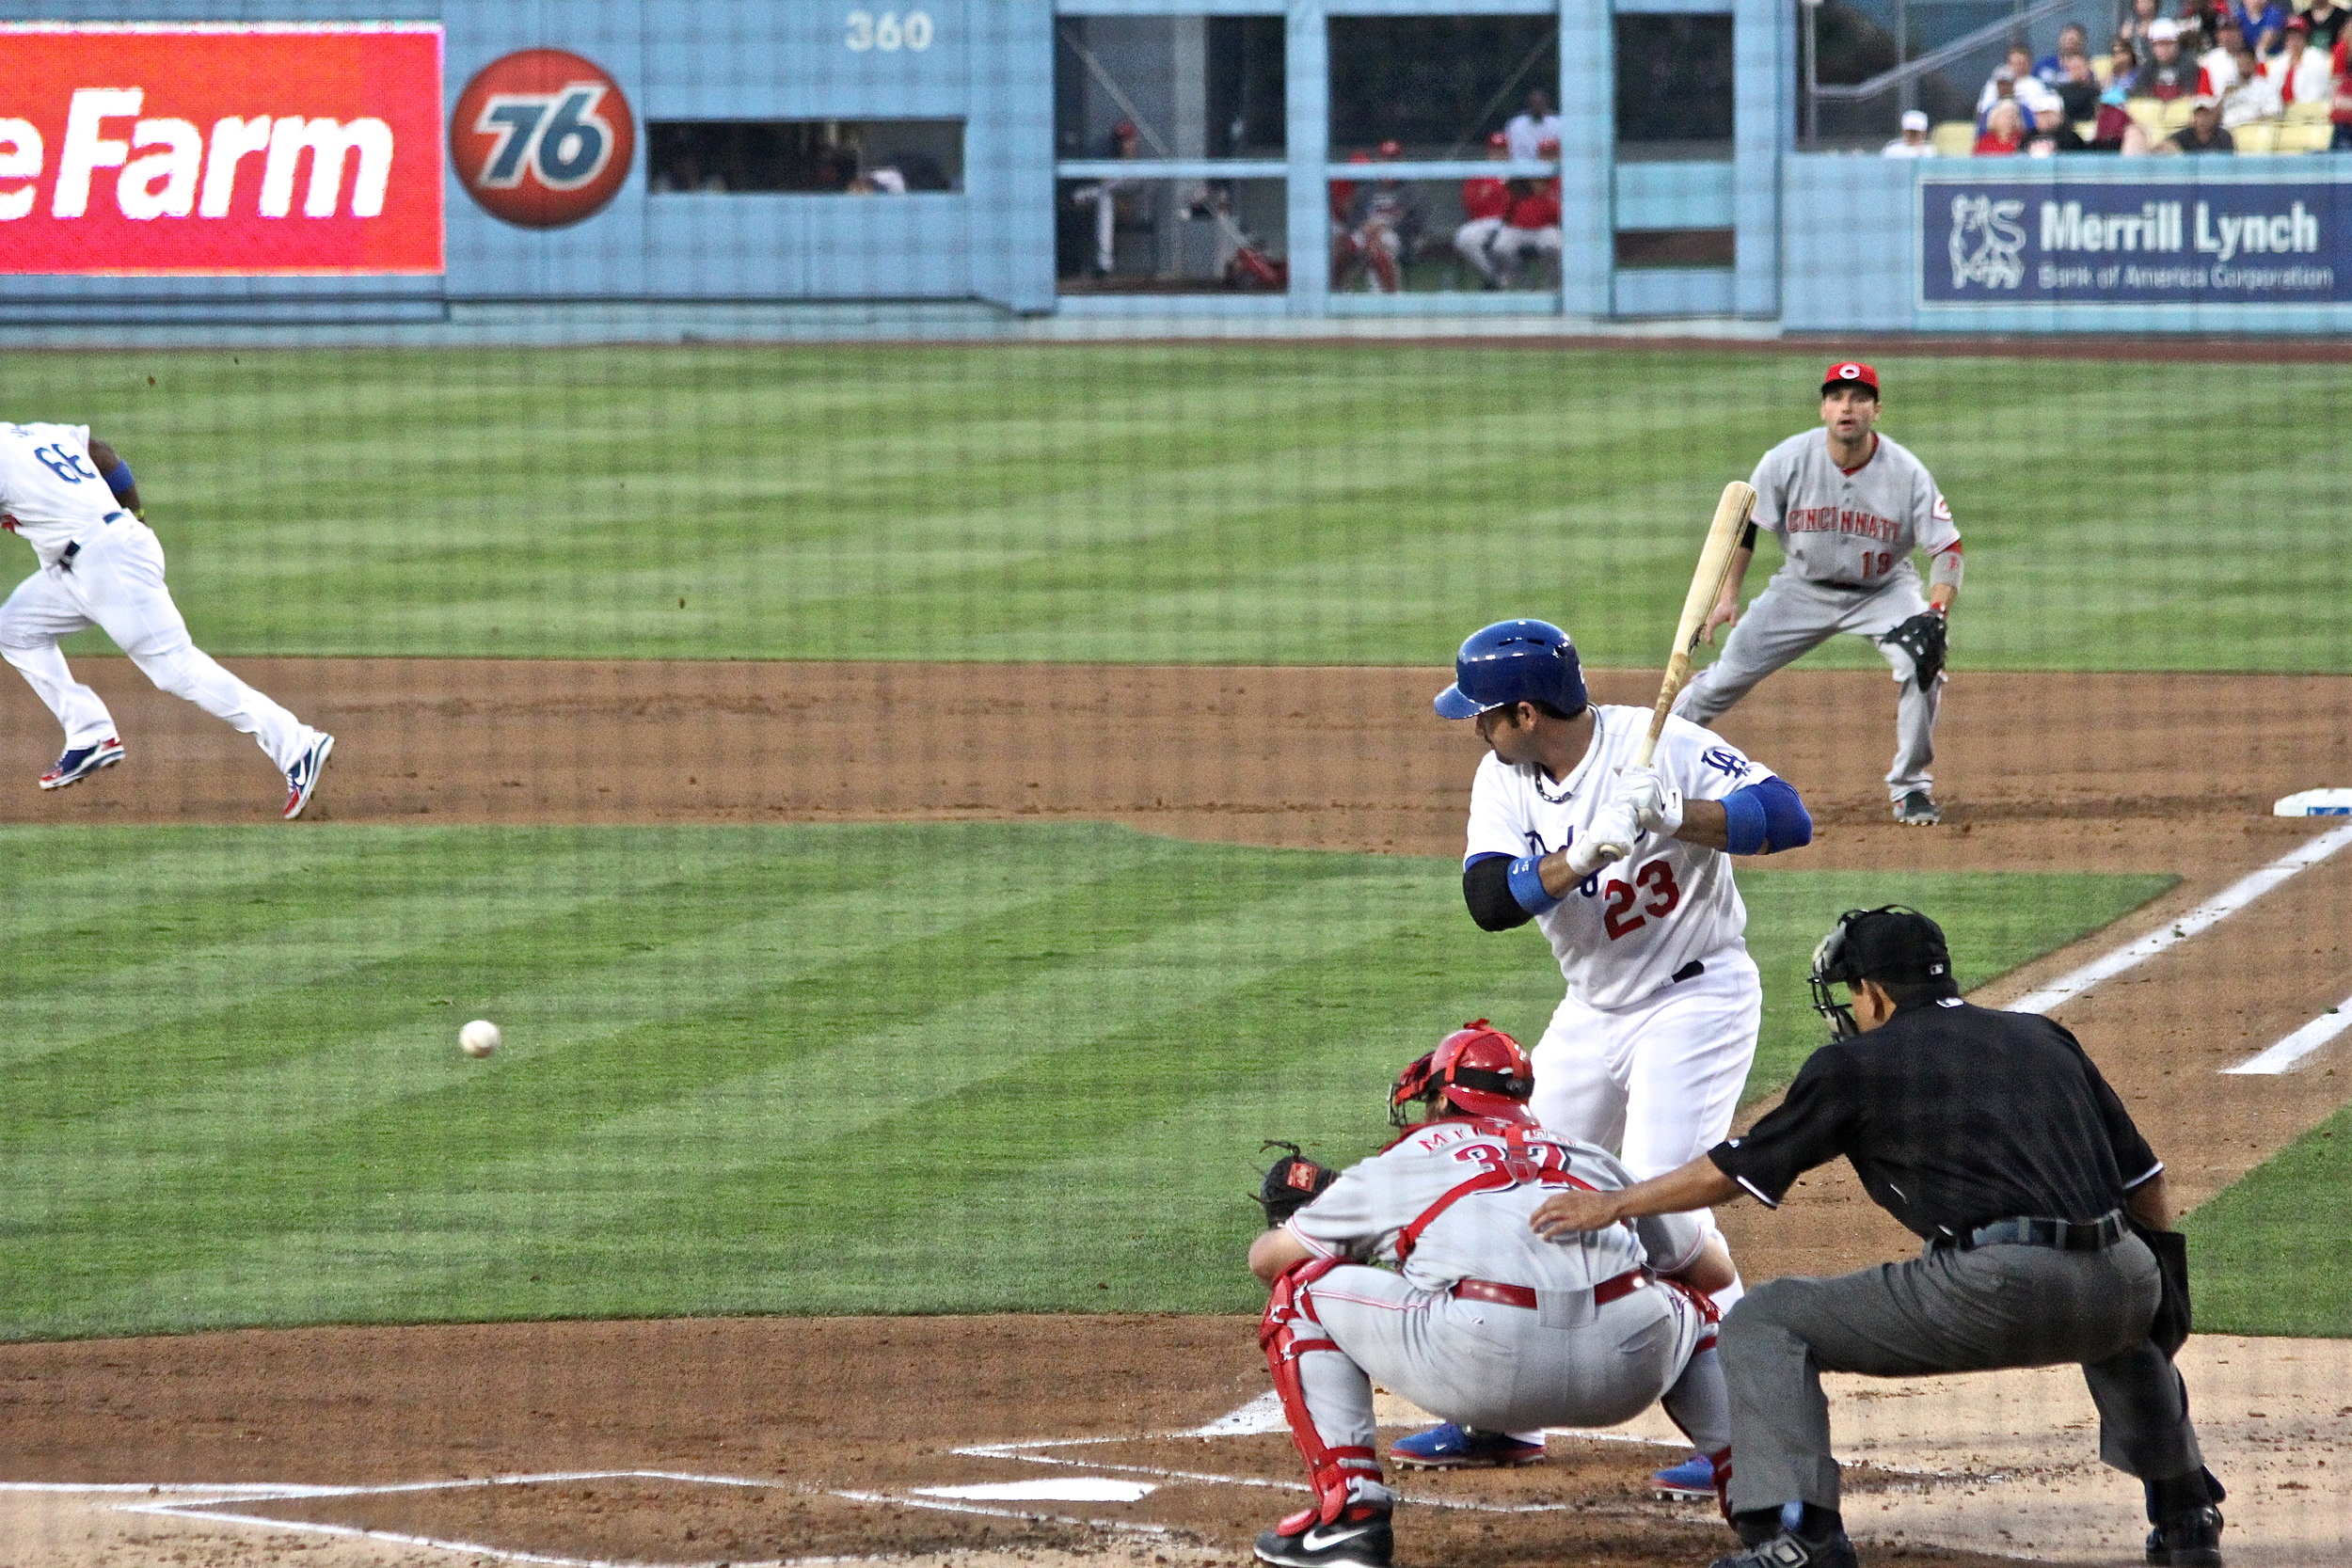 Puig takes off during Adrian Gonzalez at bat